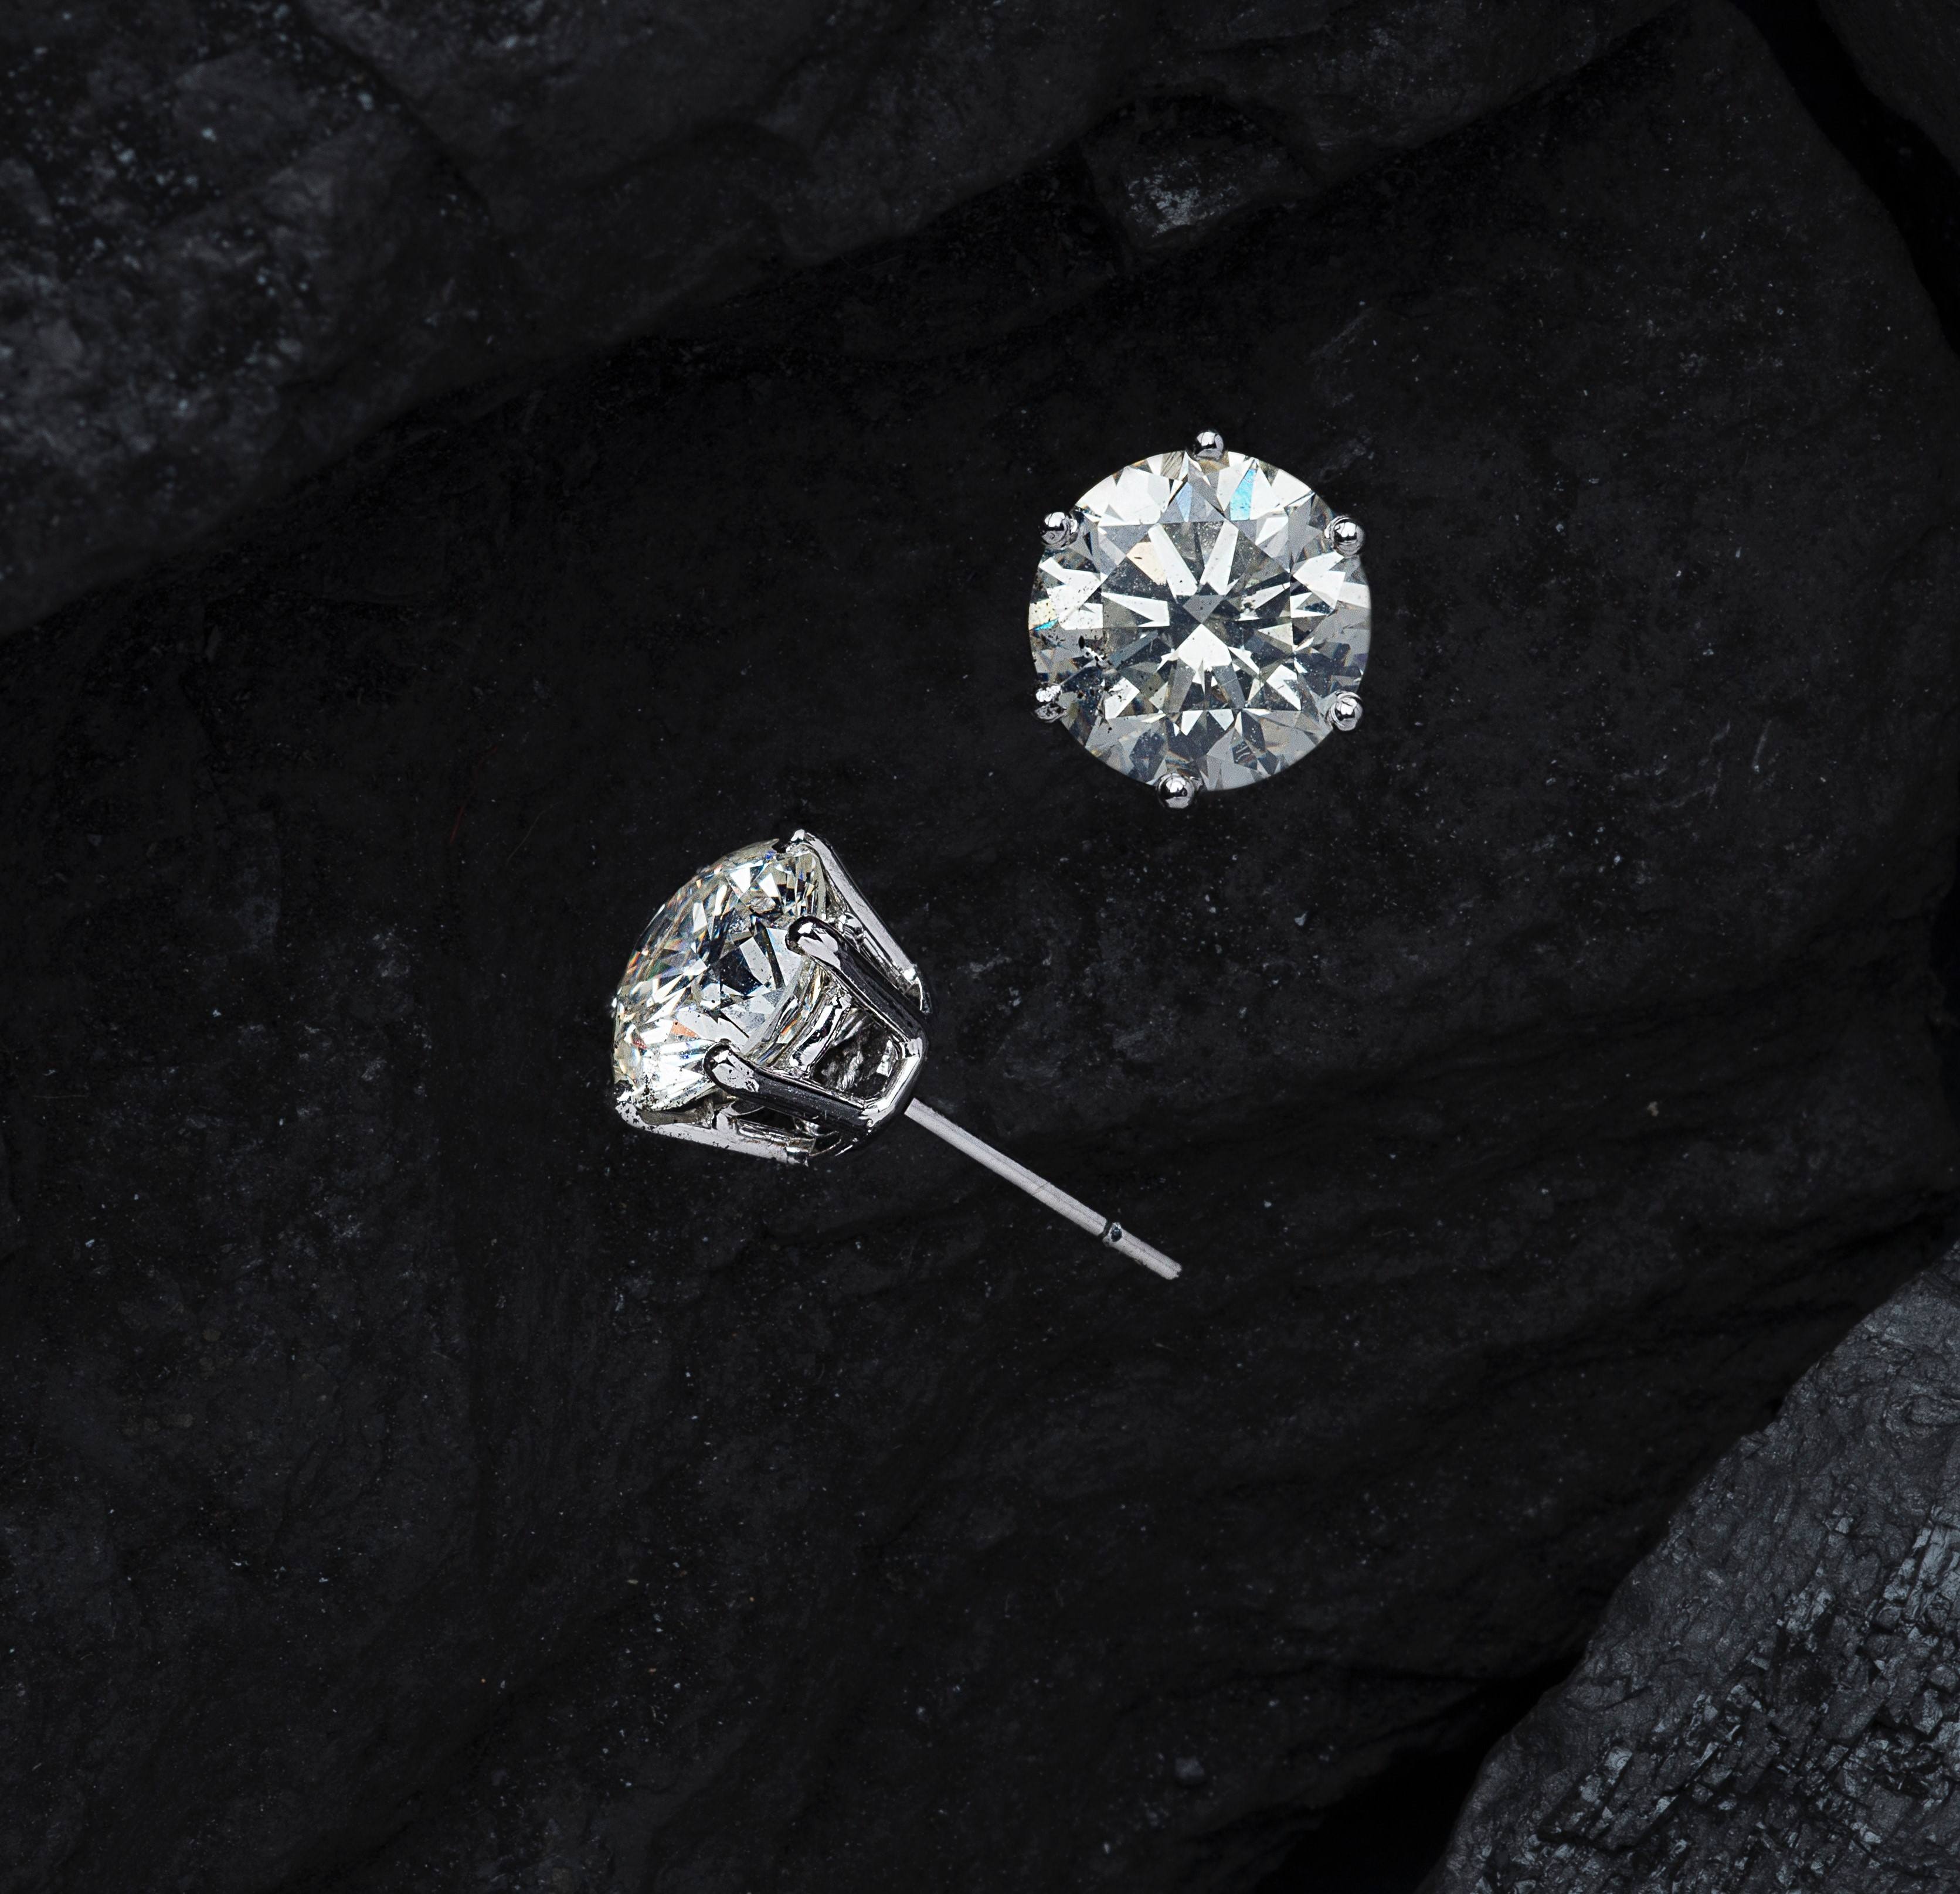 African Diamond Mining in Botswana and South Africa